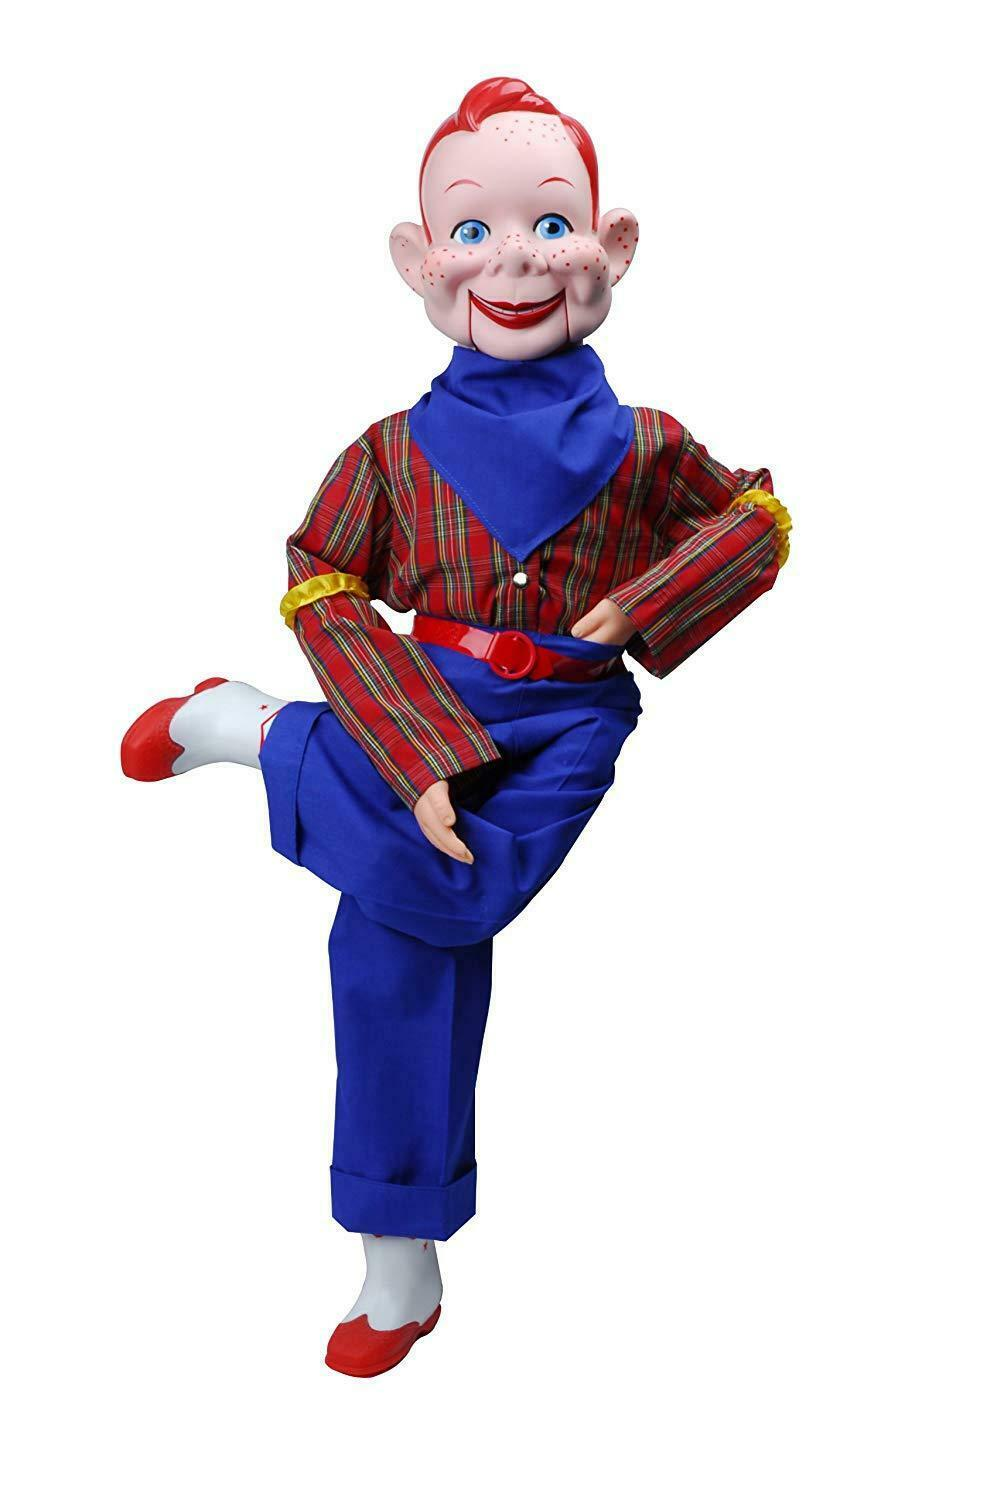 Howdy Doody Dummy Celebrity Ventriloquist Doll Star rot Hair Freckles